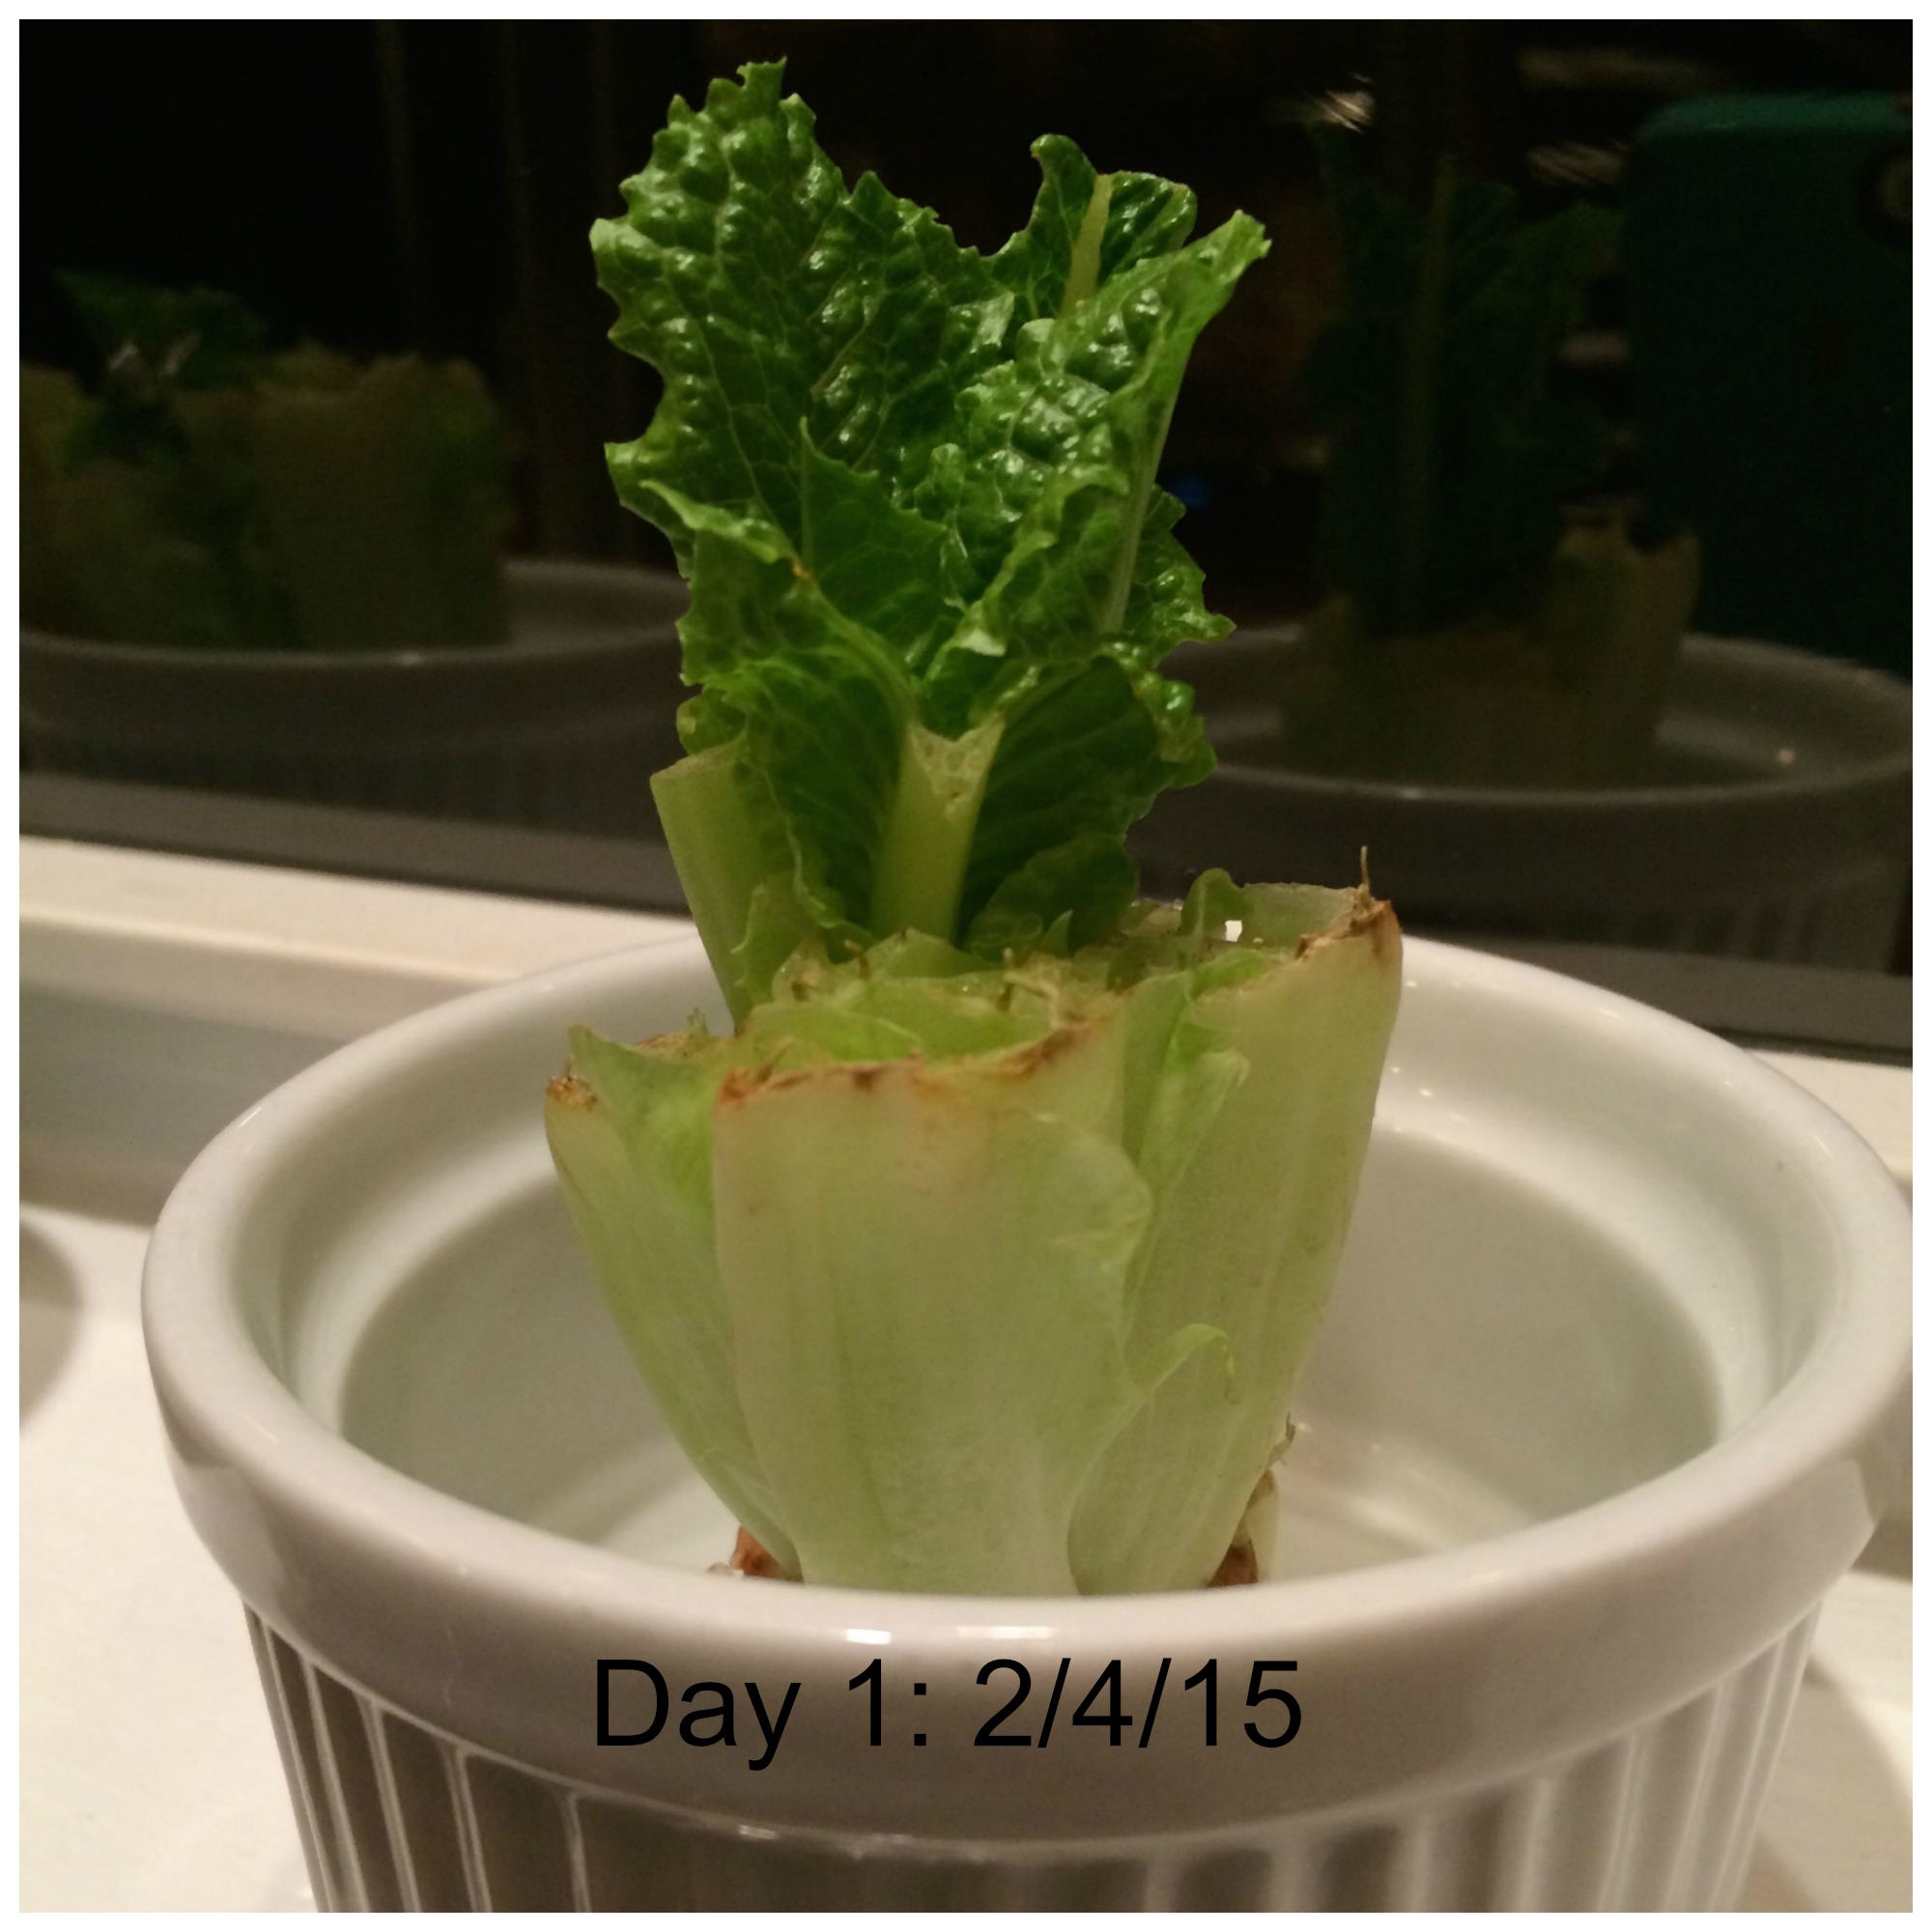 Day 1 Romaine Lettuce